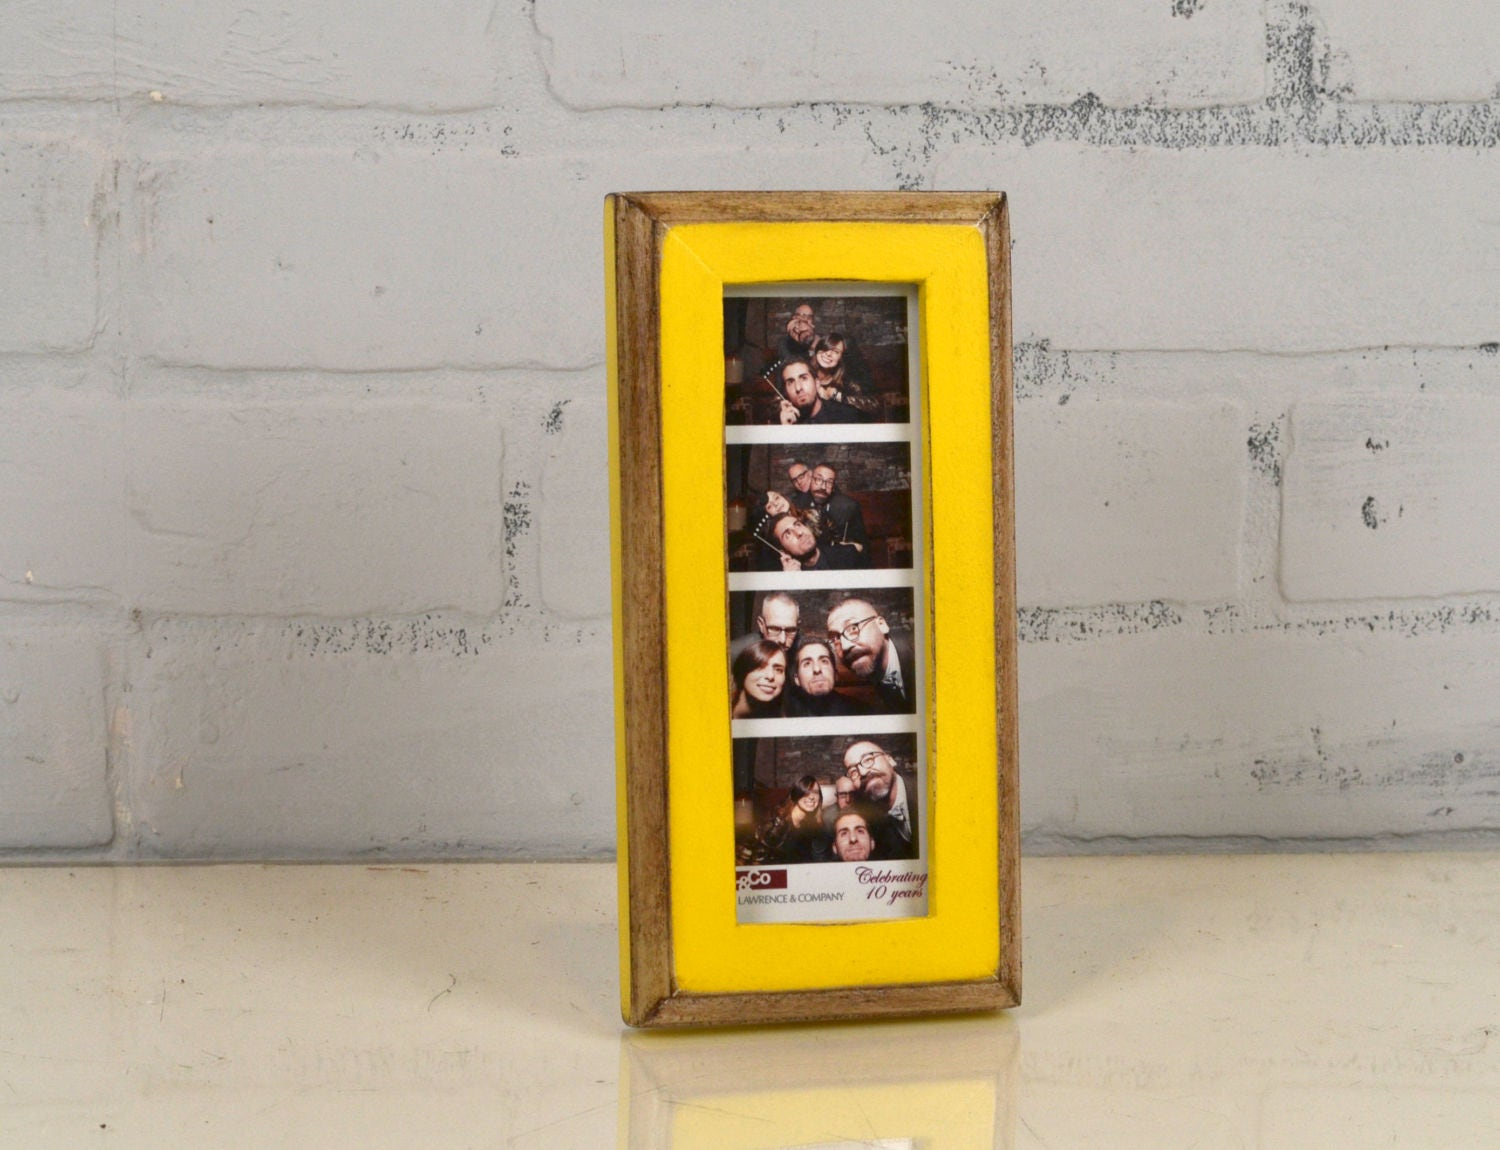 Photo Booth Frame 2 x 6 for Picture Strip in 1x1 2-Tone Style | Etsy